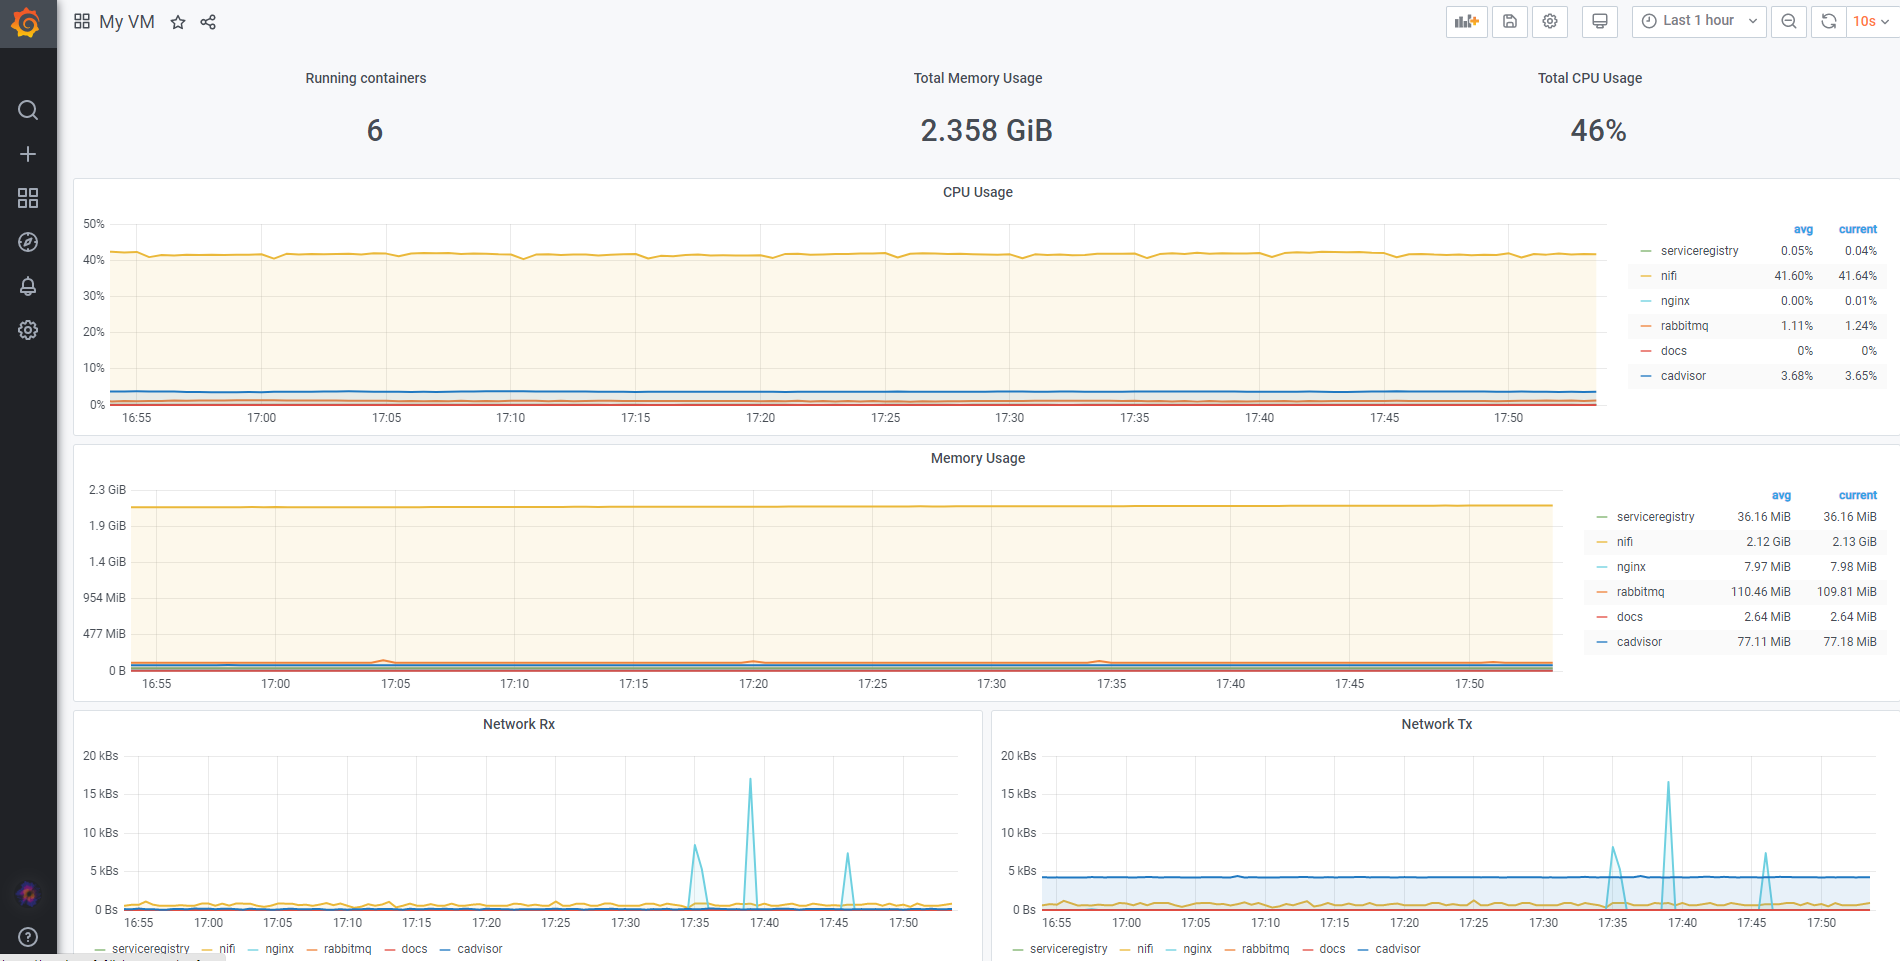 Monitoring the docker containers running in a server